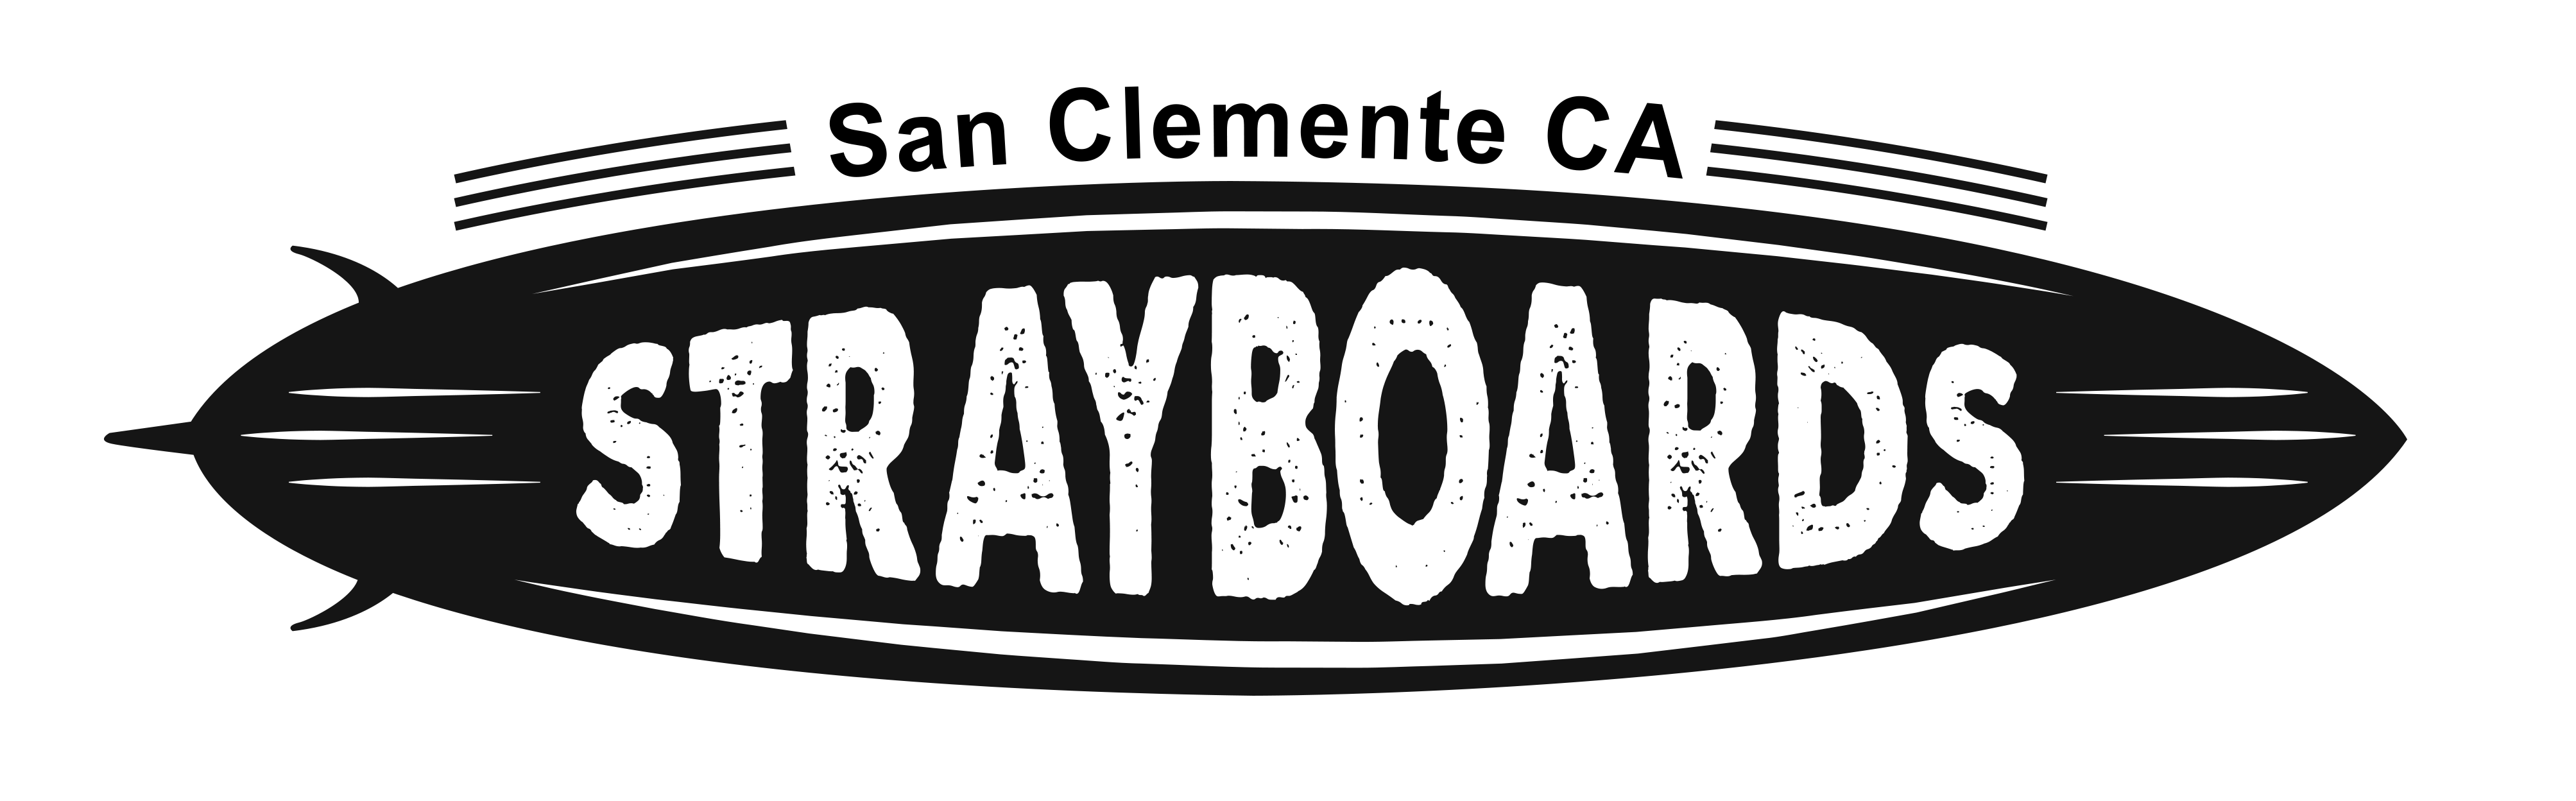 strayboards-logo-final-2-for-sticker.png